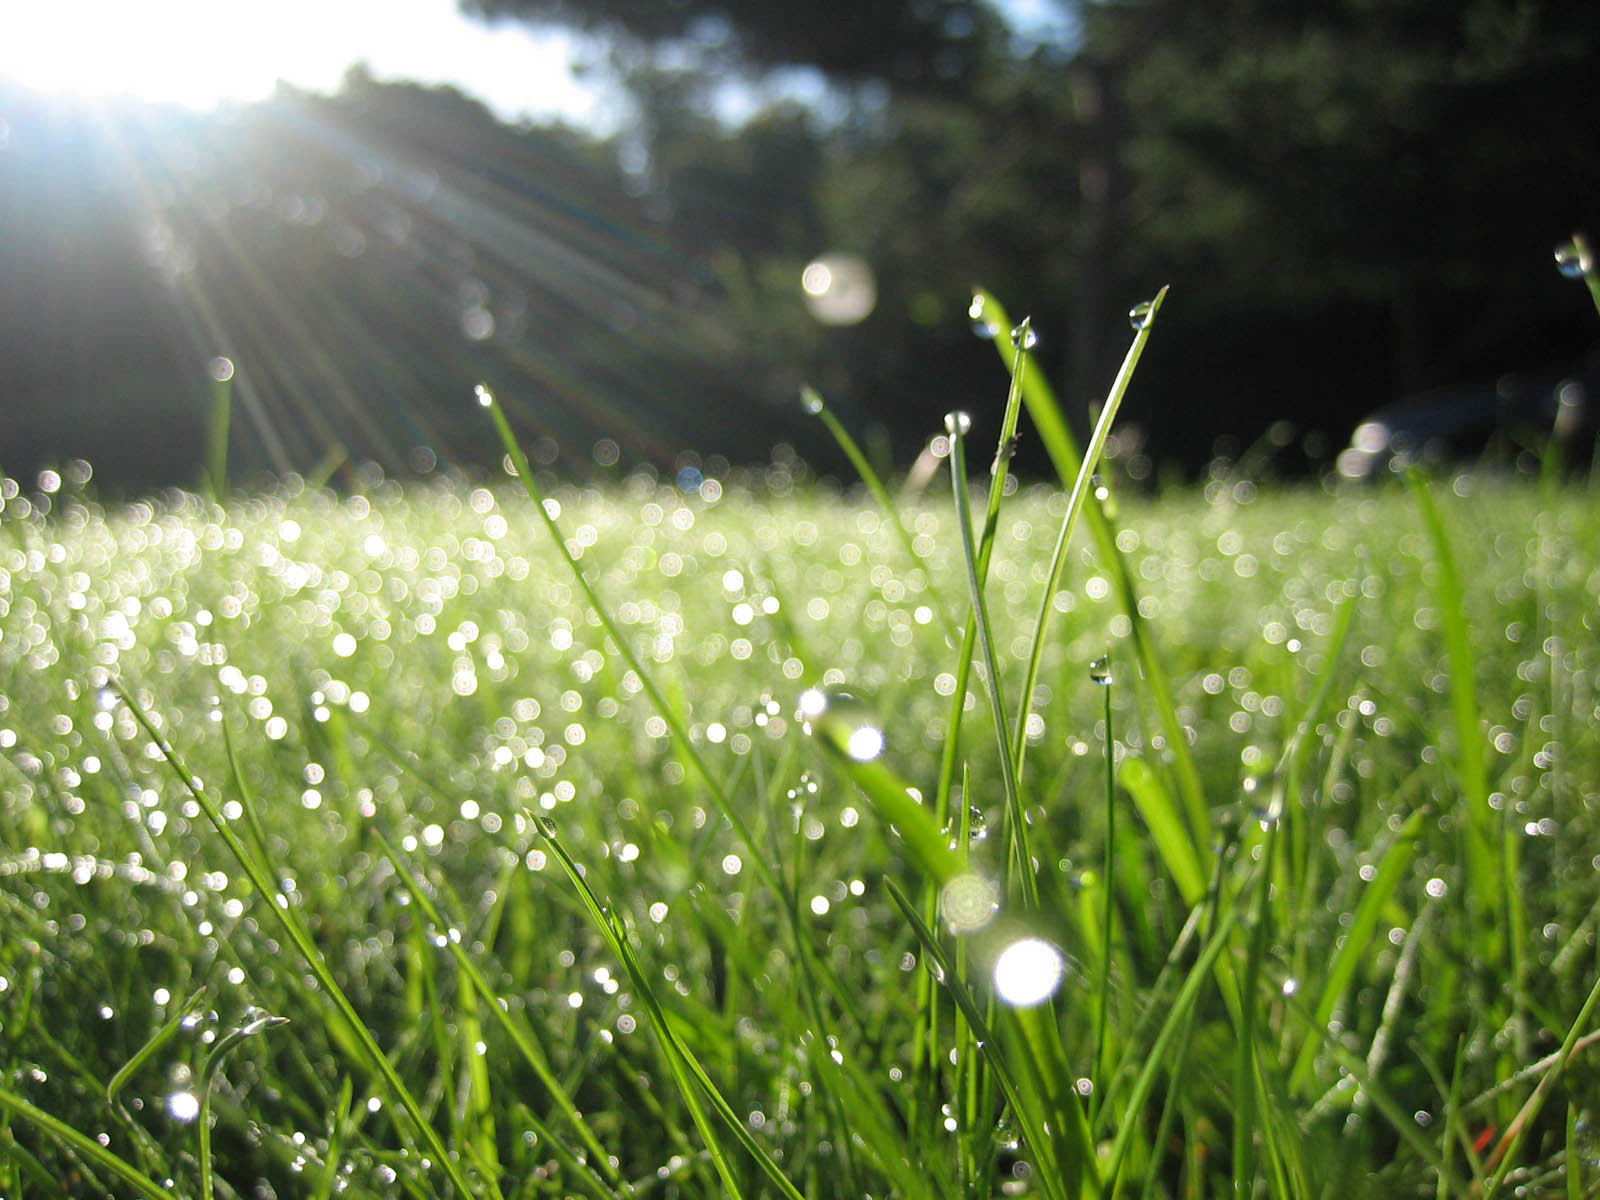 May morning dew